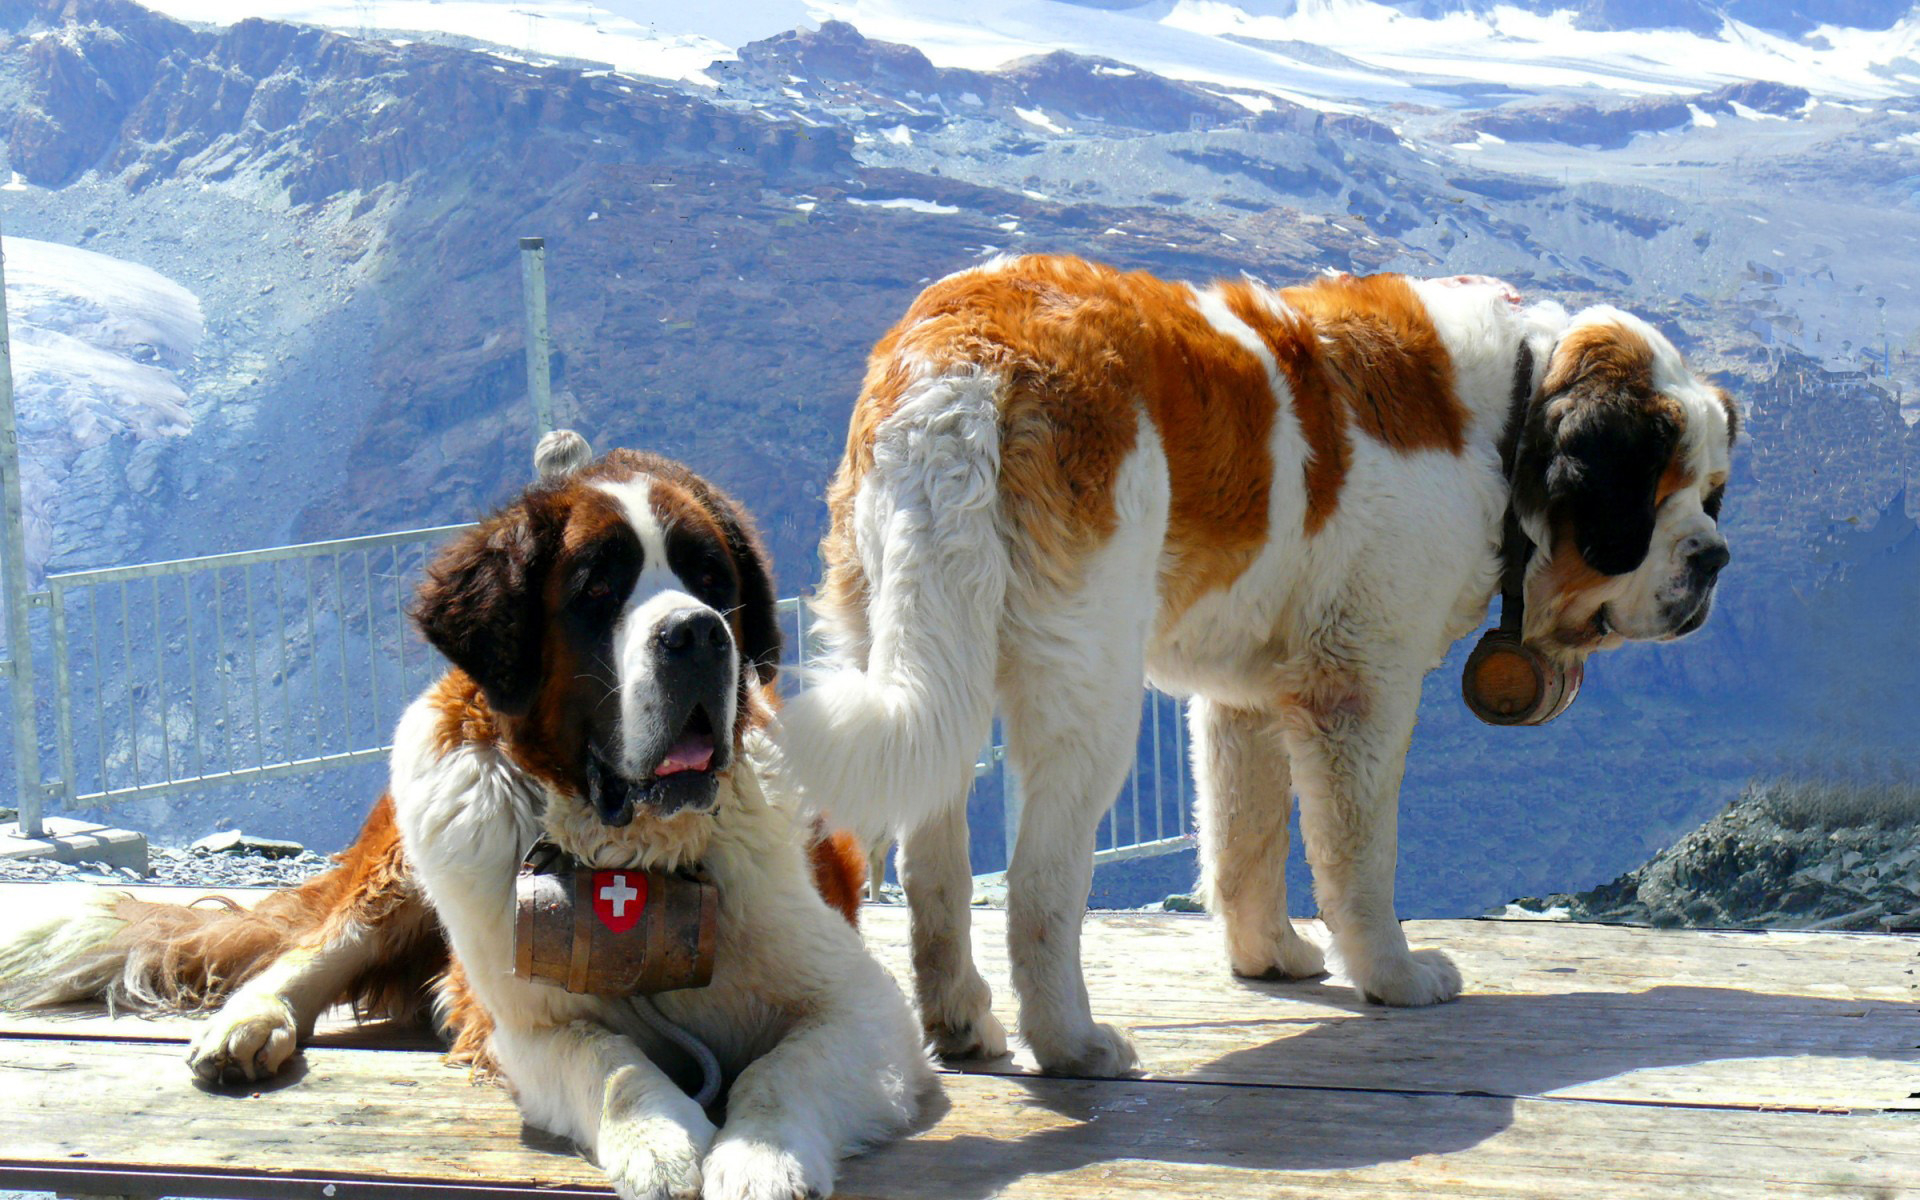 original wallpaper download: St. Bernards - 1920x1200